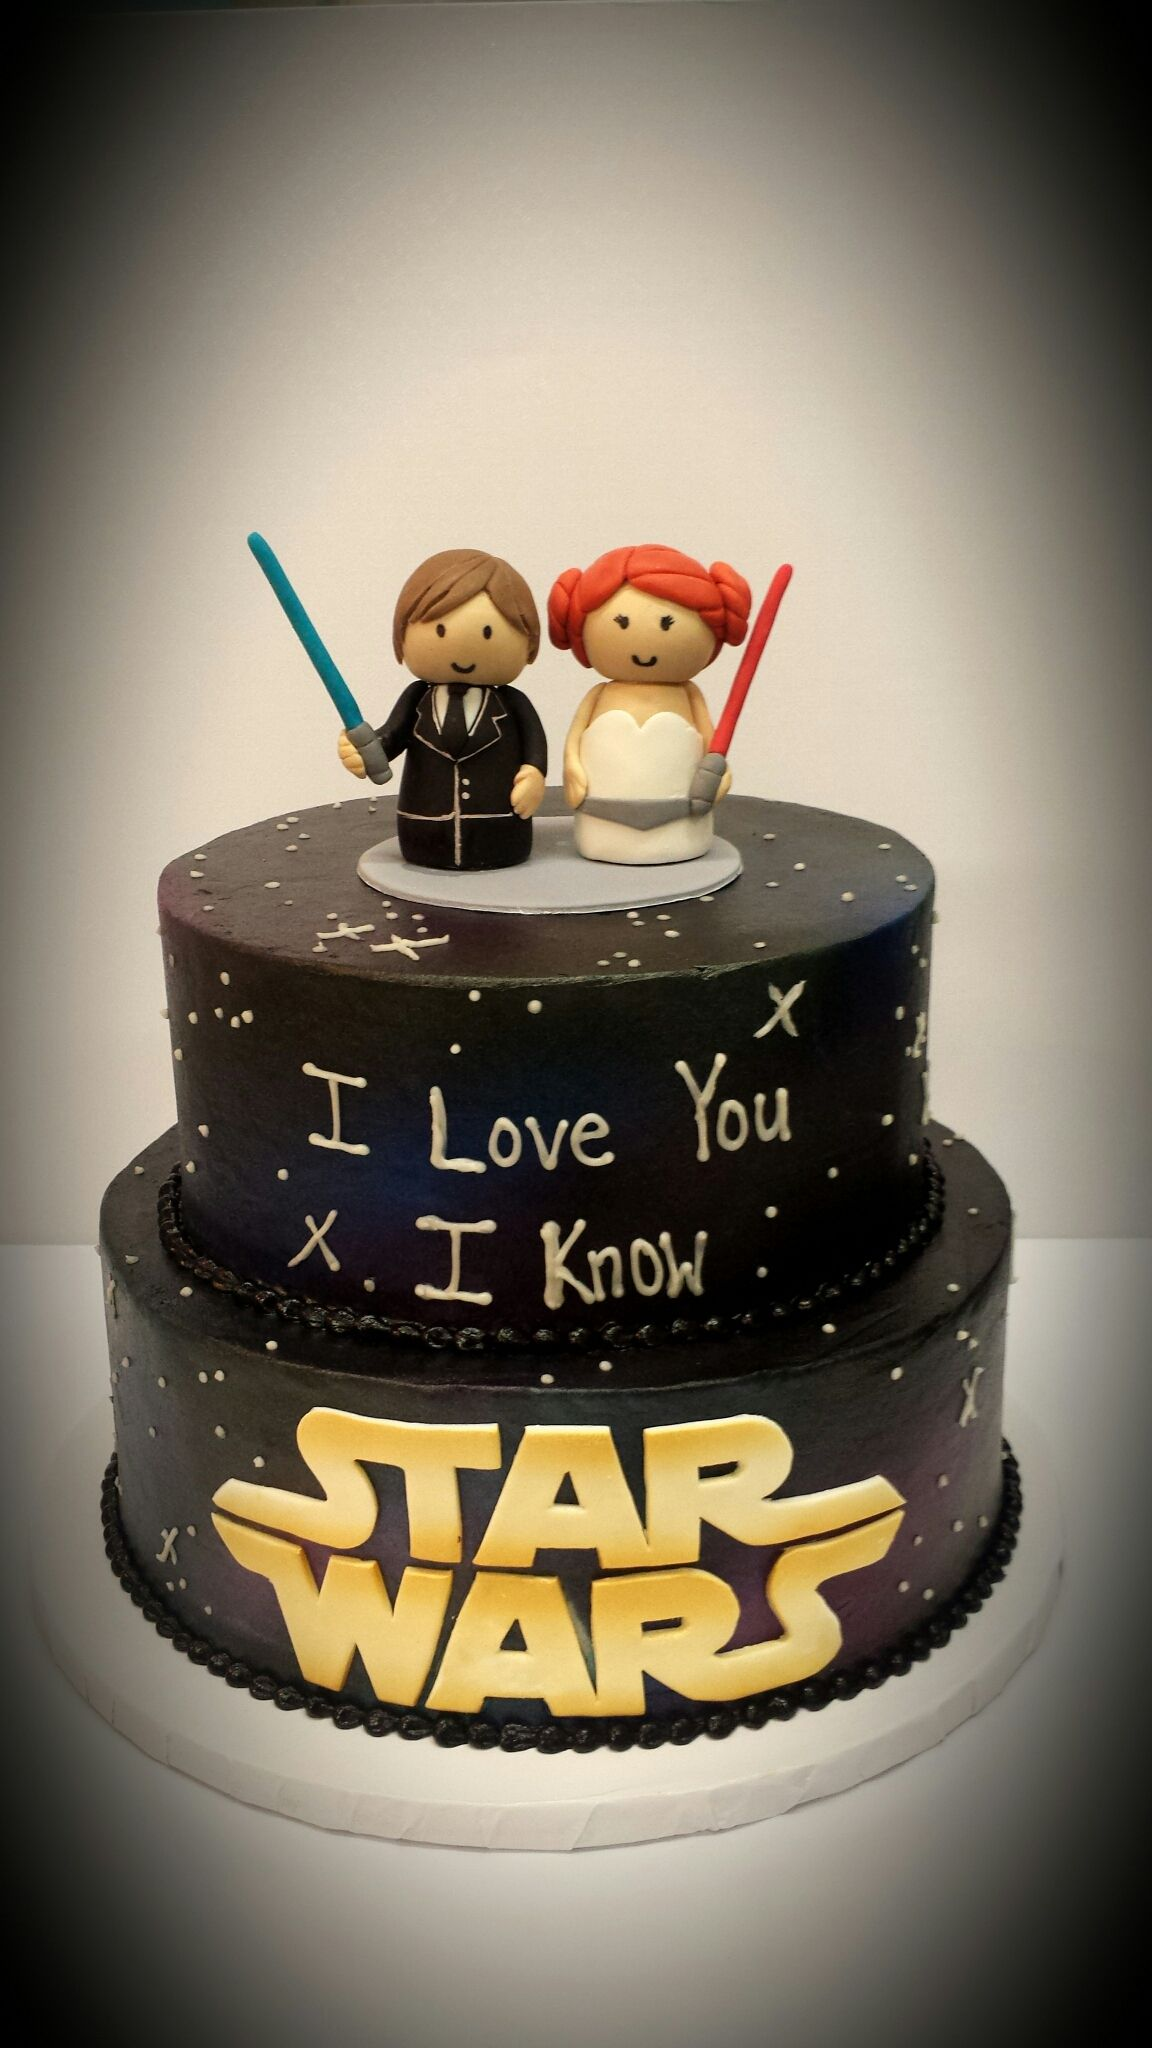 Small Crop Of Star Wars Wedding Cake